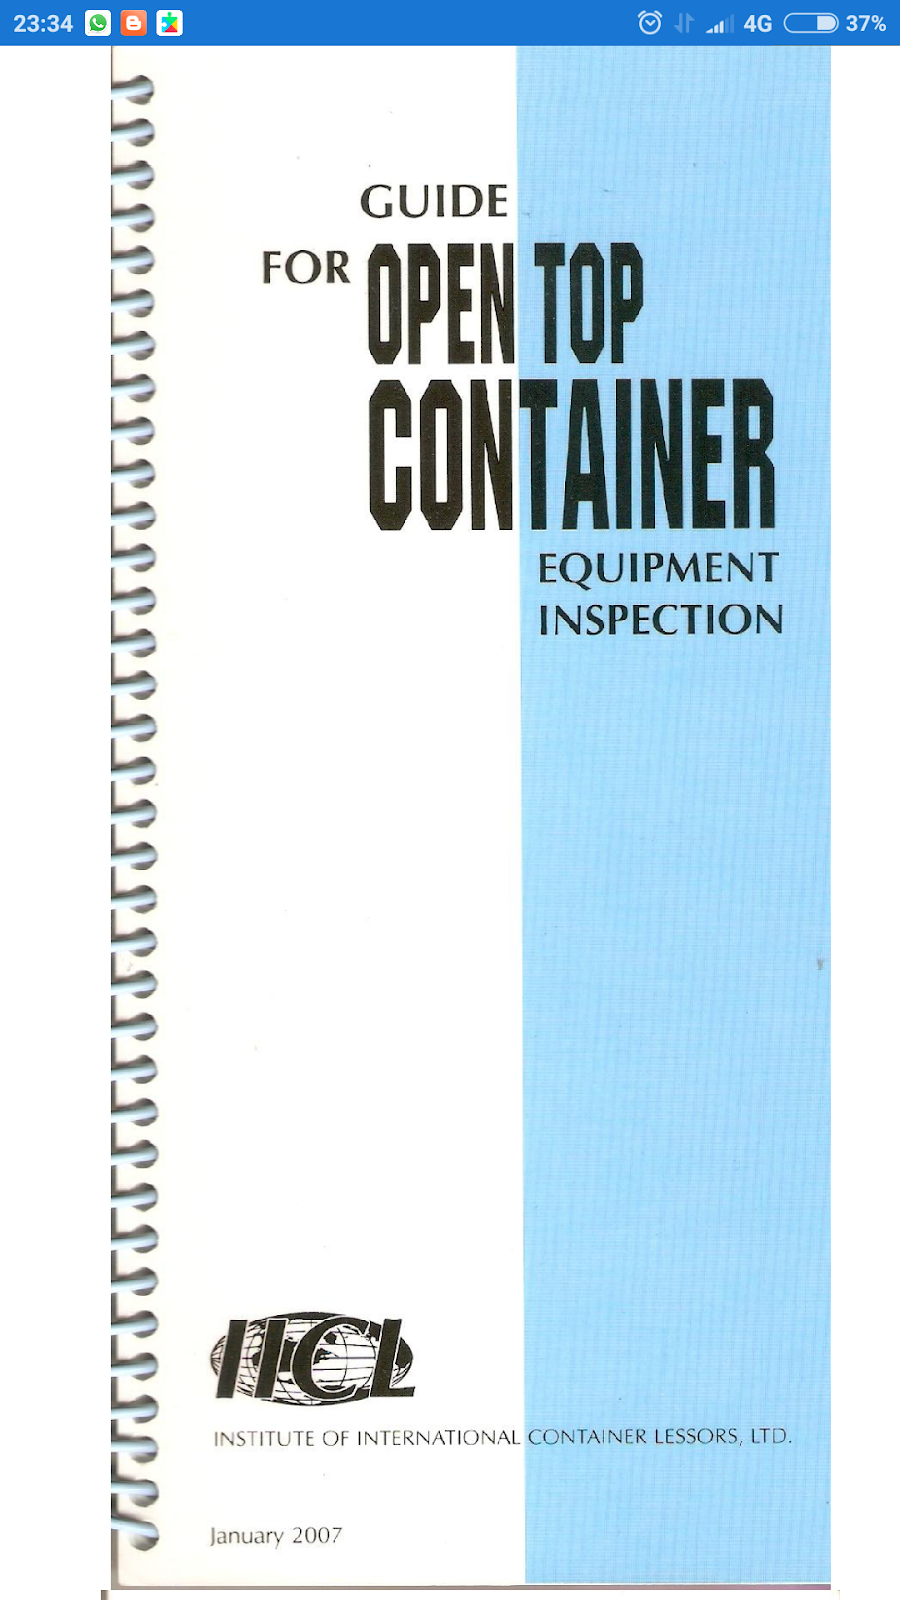 guide for open top container equipment inspection apk version rh dhilreefer blogspot com Container Inspection Form C-TPAT Container Inspections